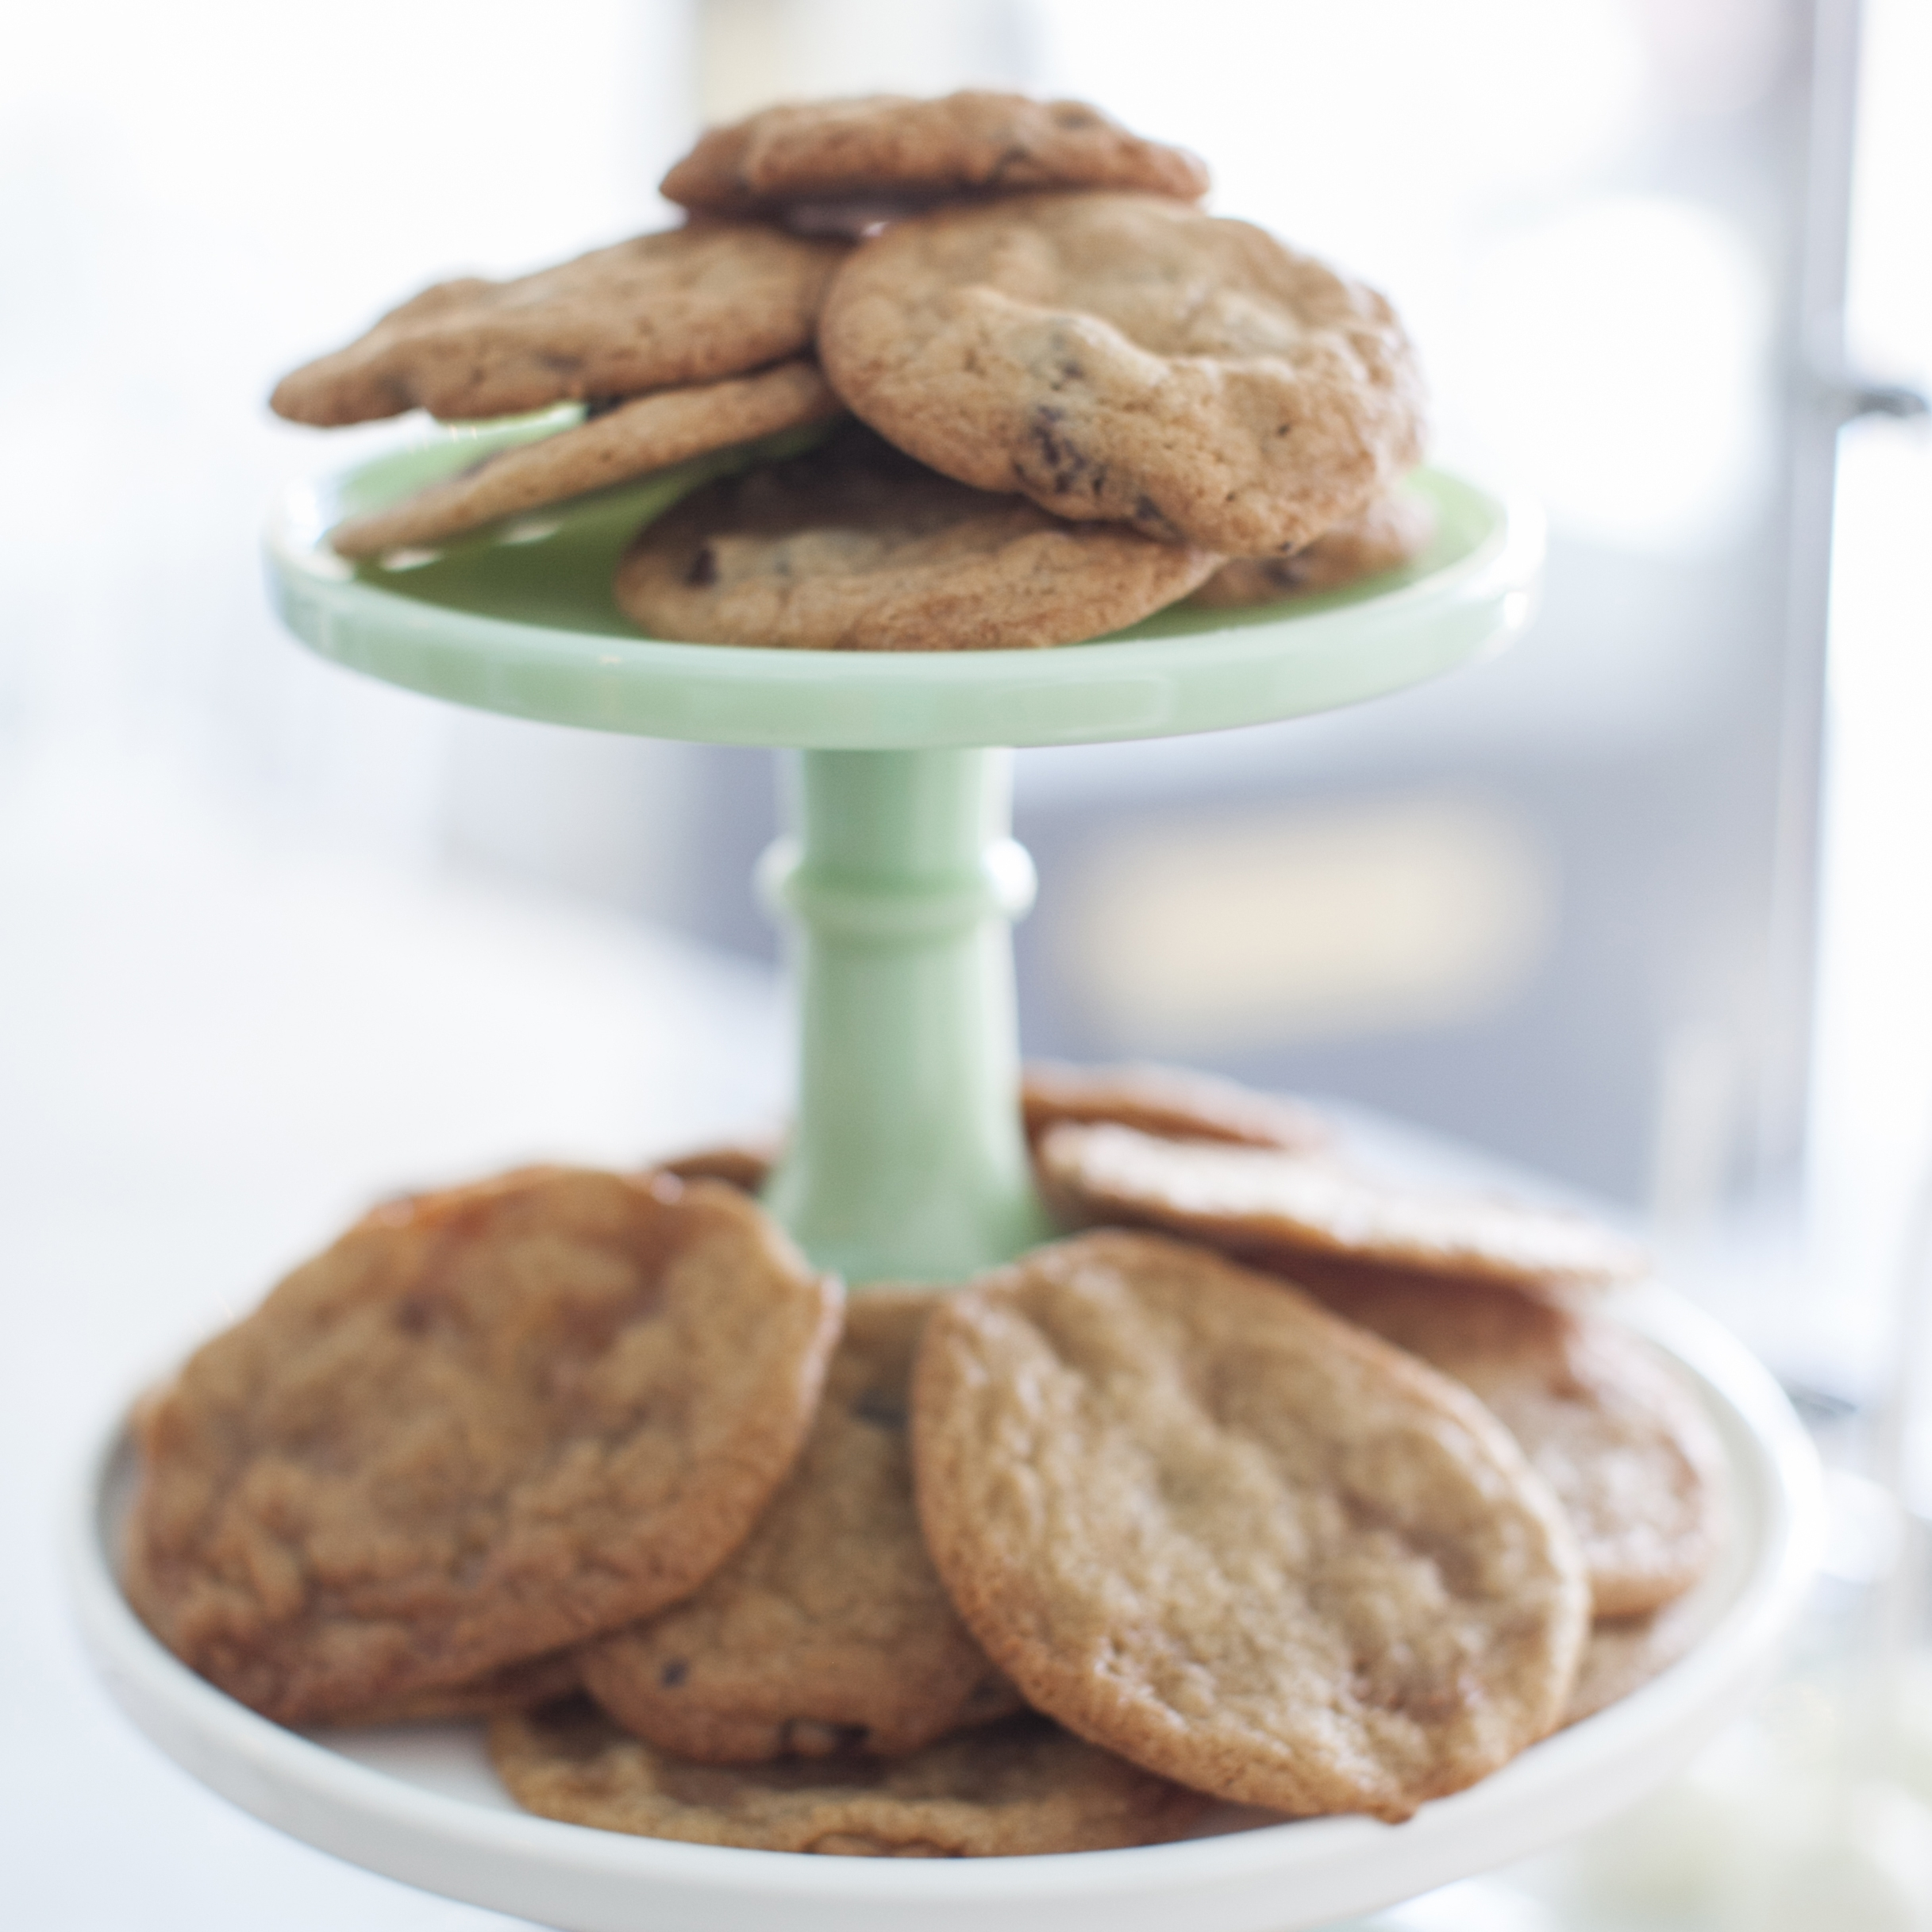 Classic Cookies  Chocolate Chip, Toffee, Double Chocolate Sea Salt, Peanut Butter, etc  $22